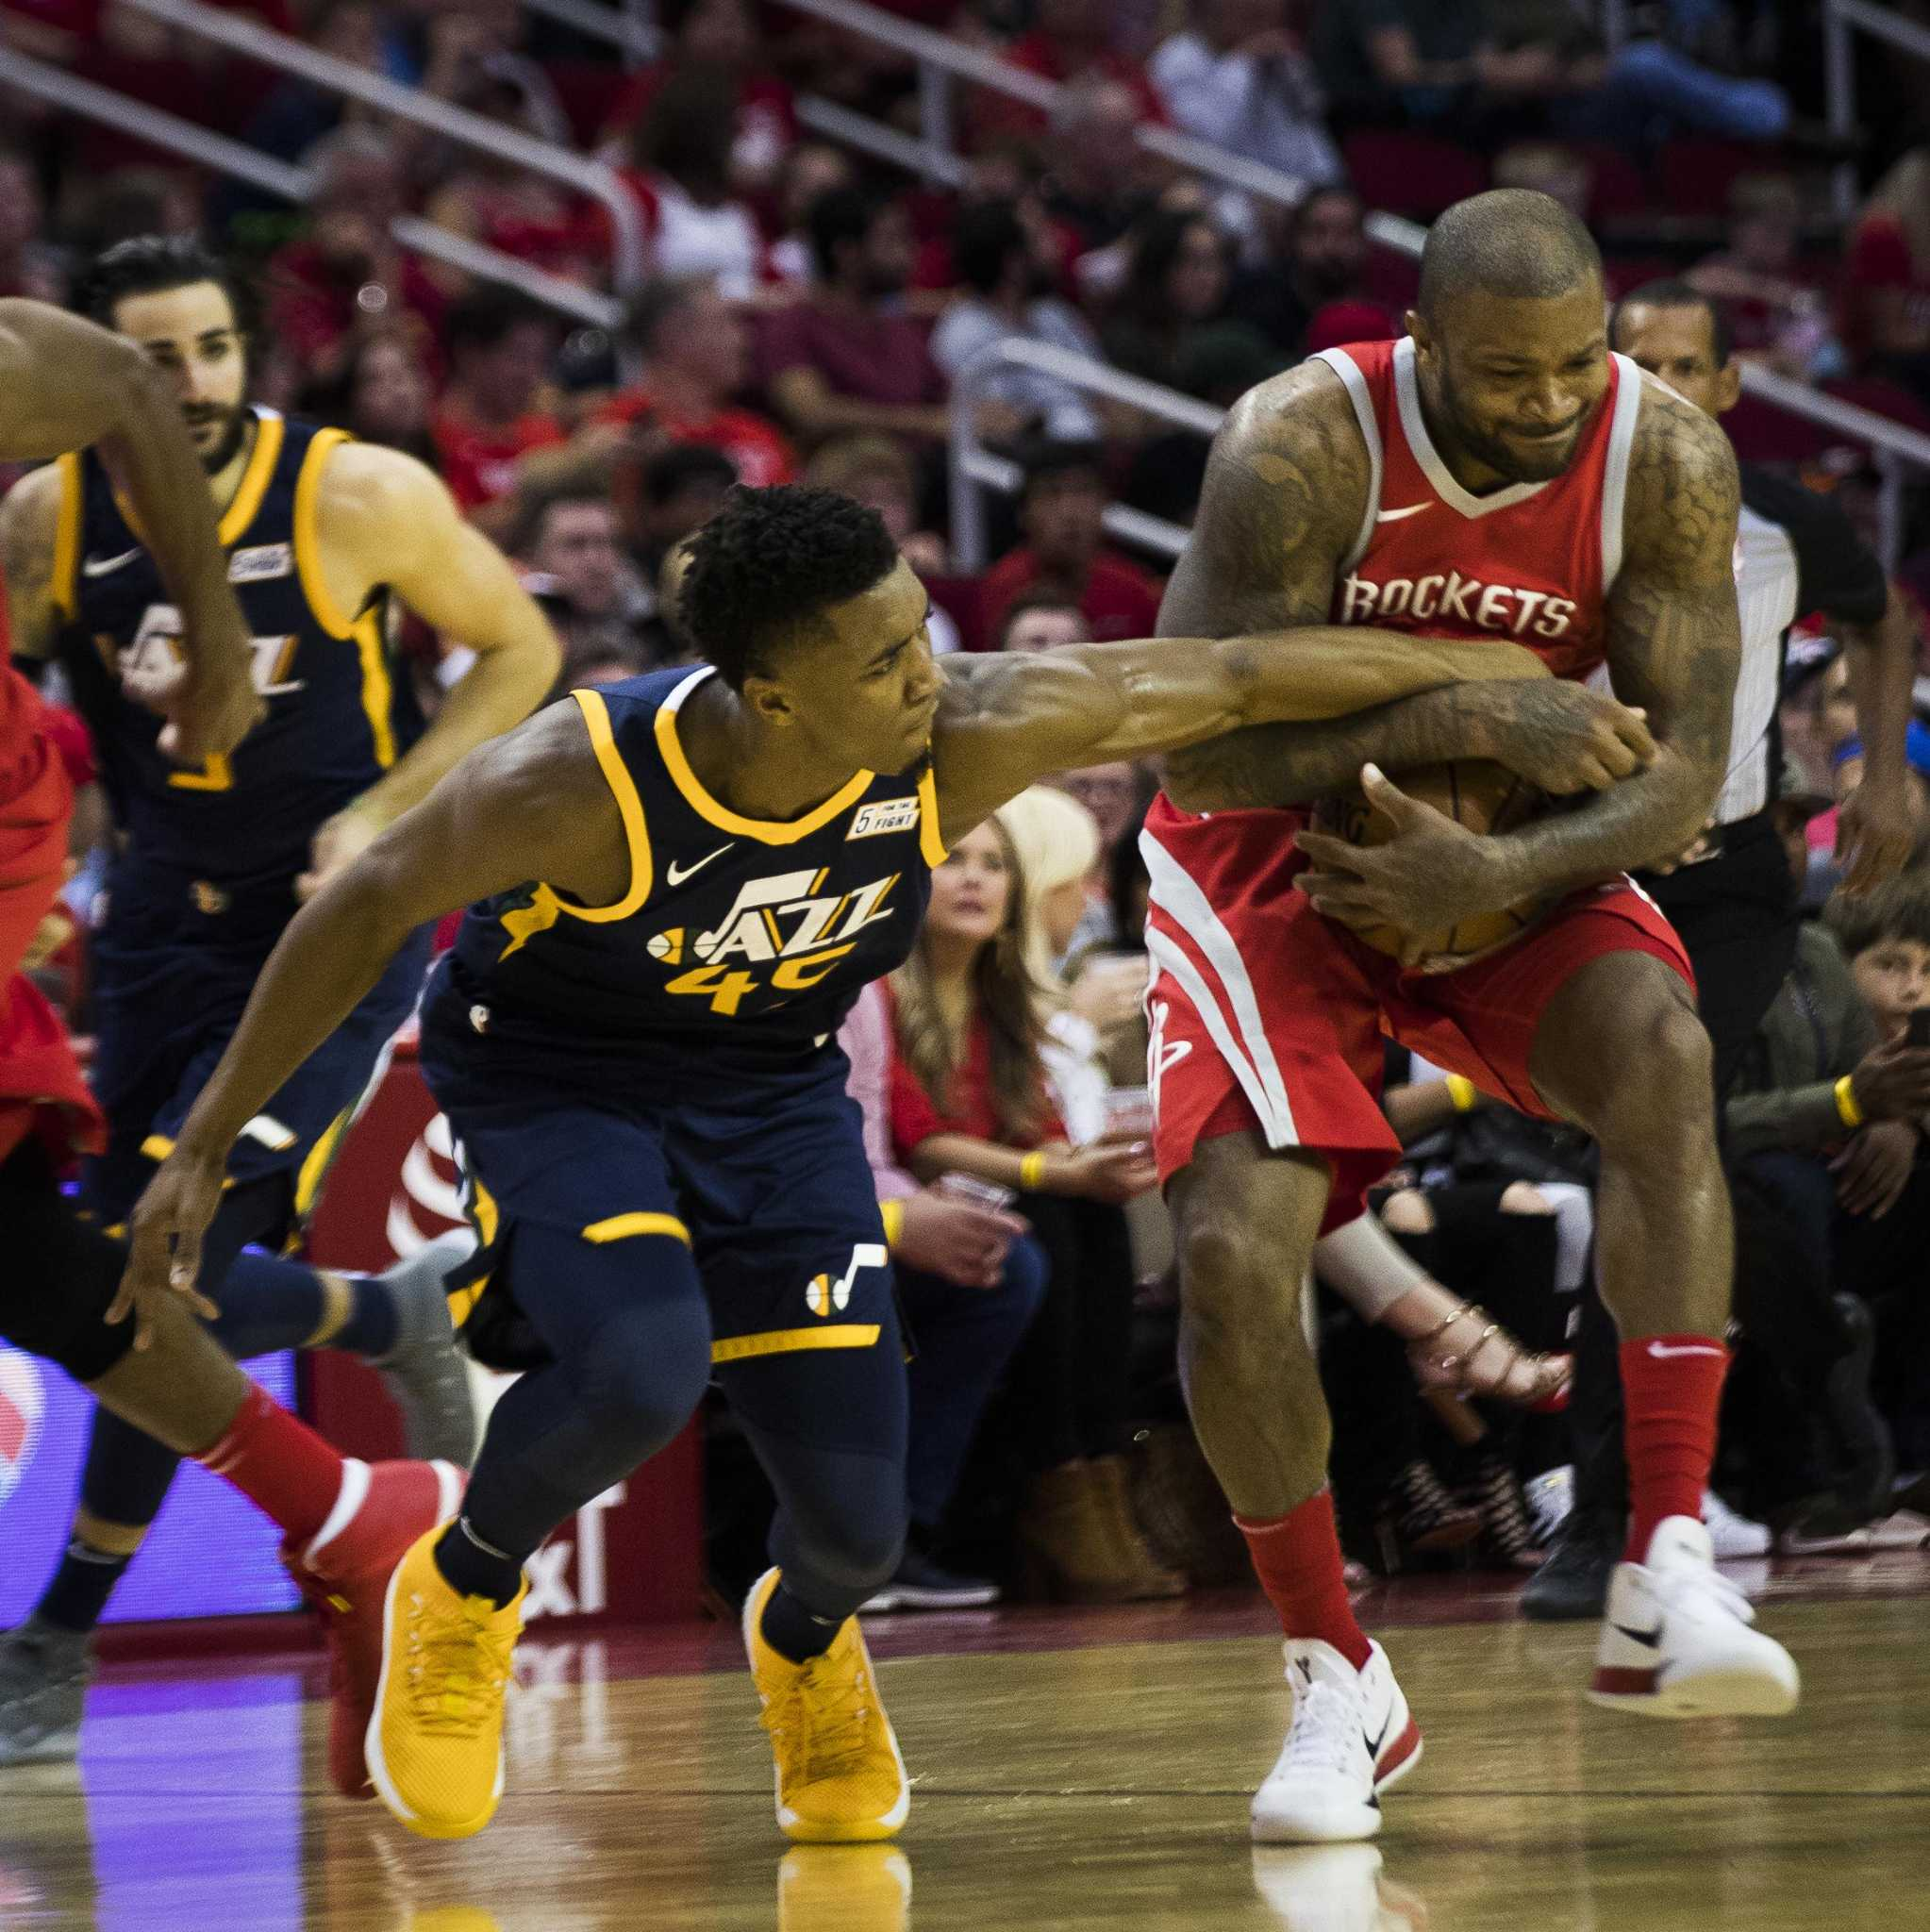 If The Real Rockets Show Up, Series Vs. Jazz Shouldn't